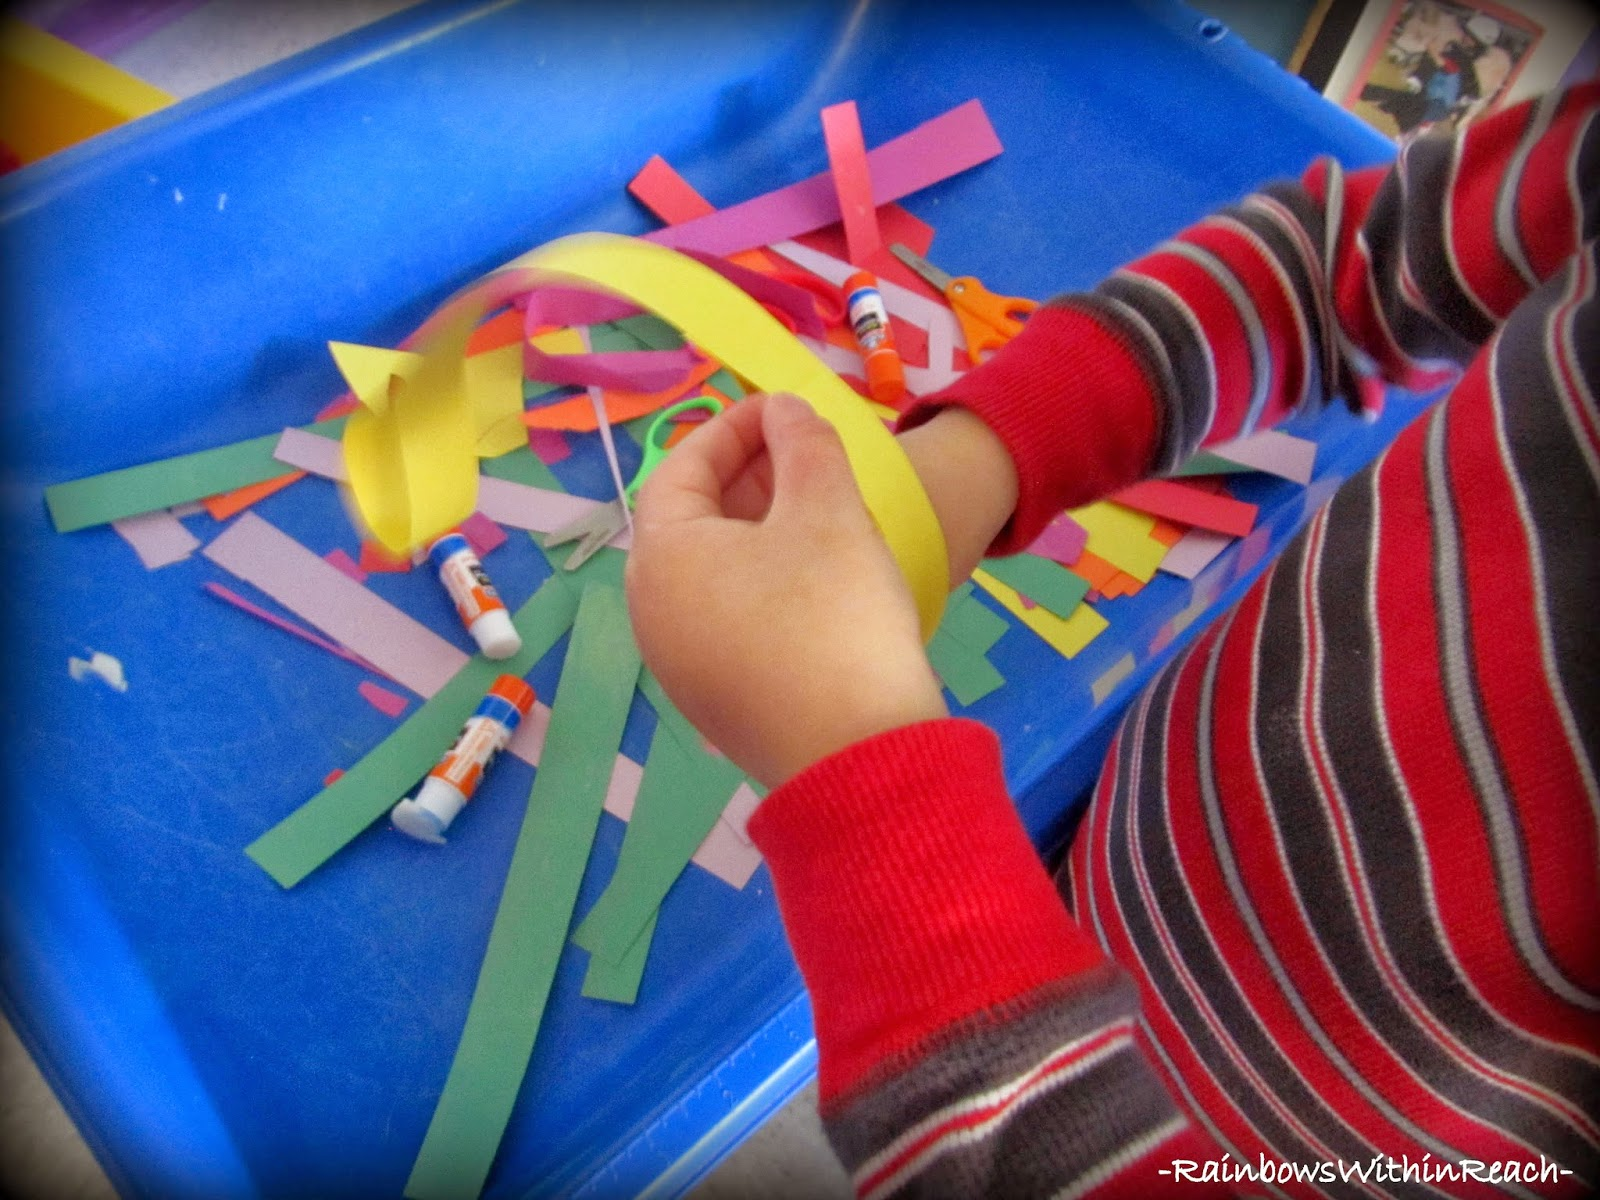 Sensory Table filled with strips and stripes of paper, scissors & glue sticks! (via RainbowsWithinReach)